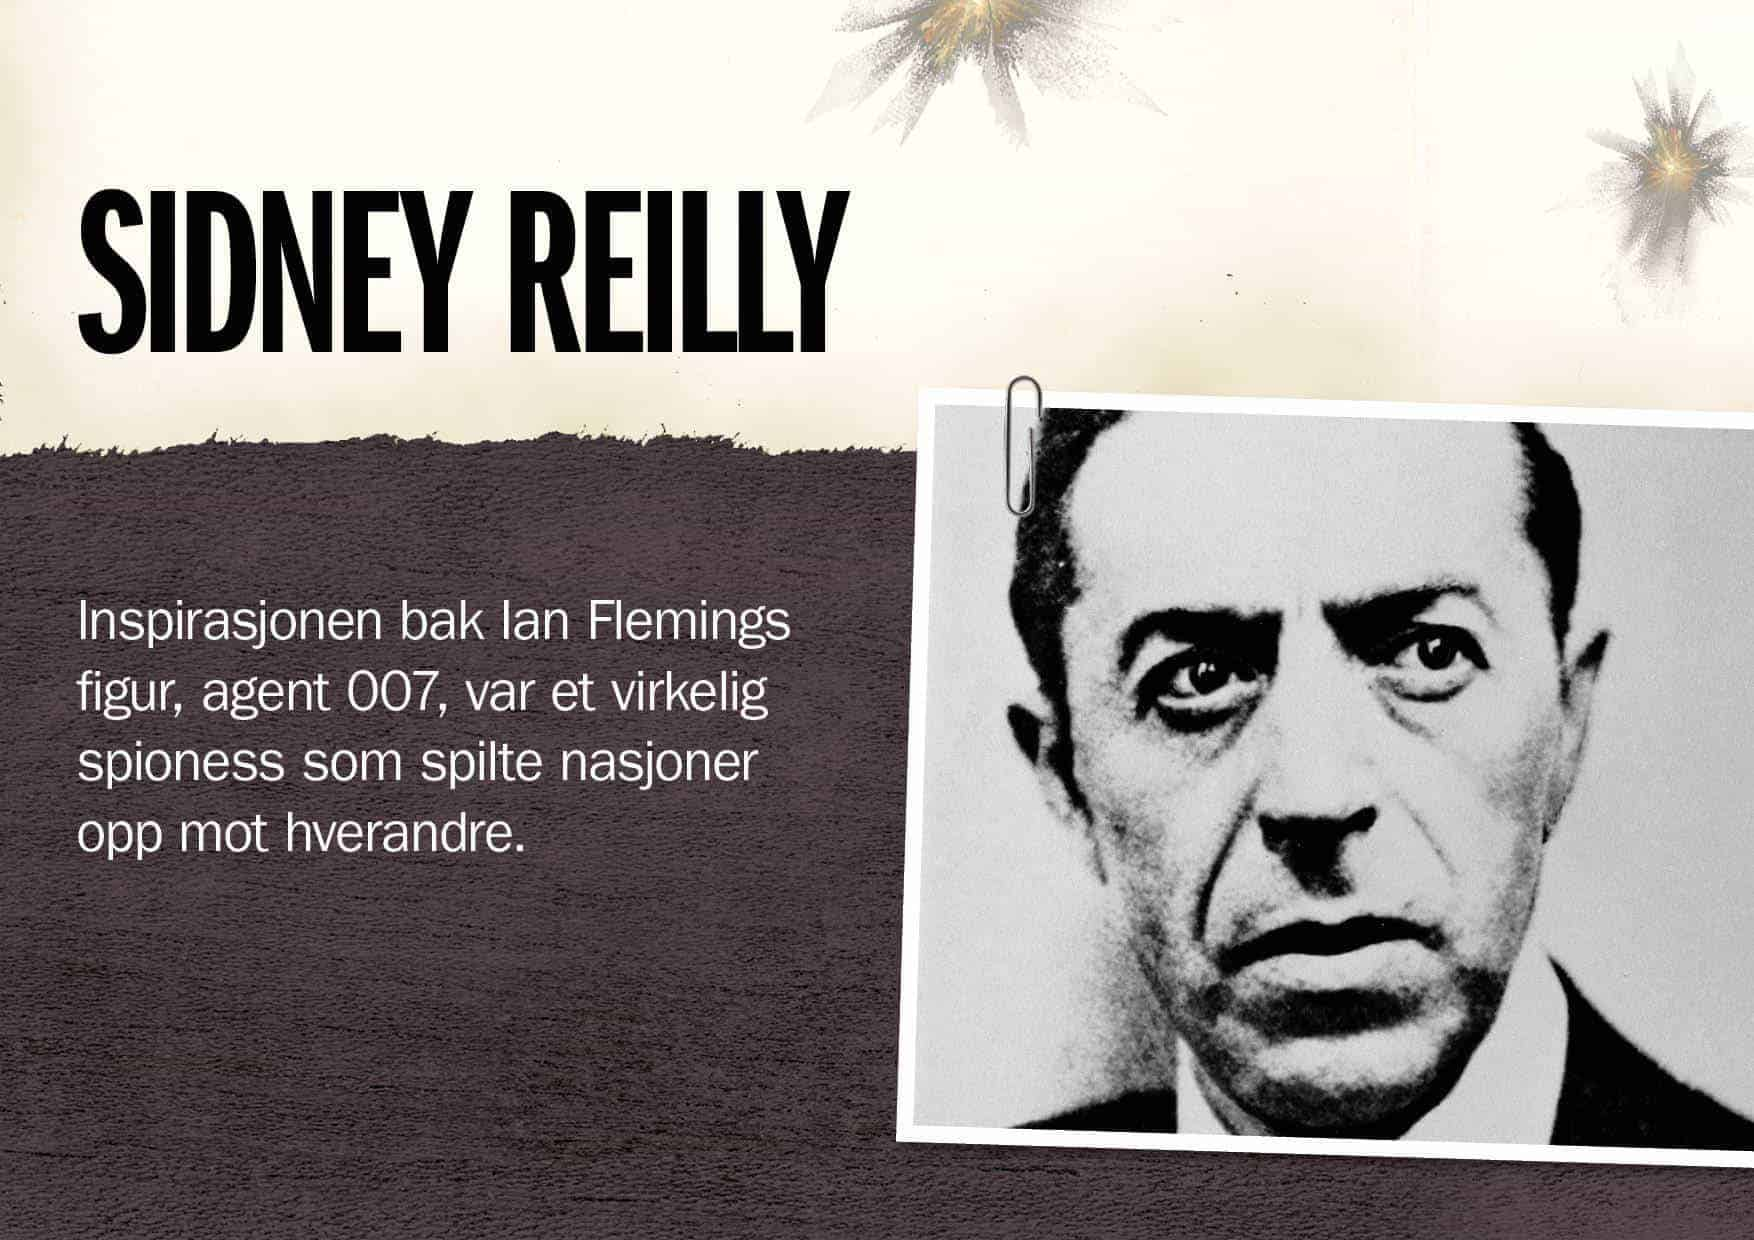 Superspioner: Sidney Reilly